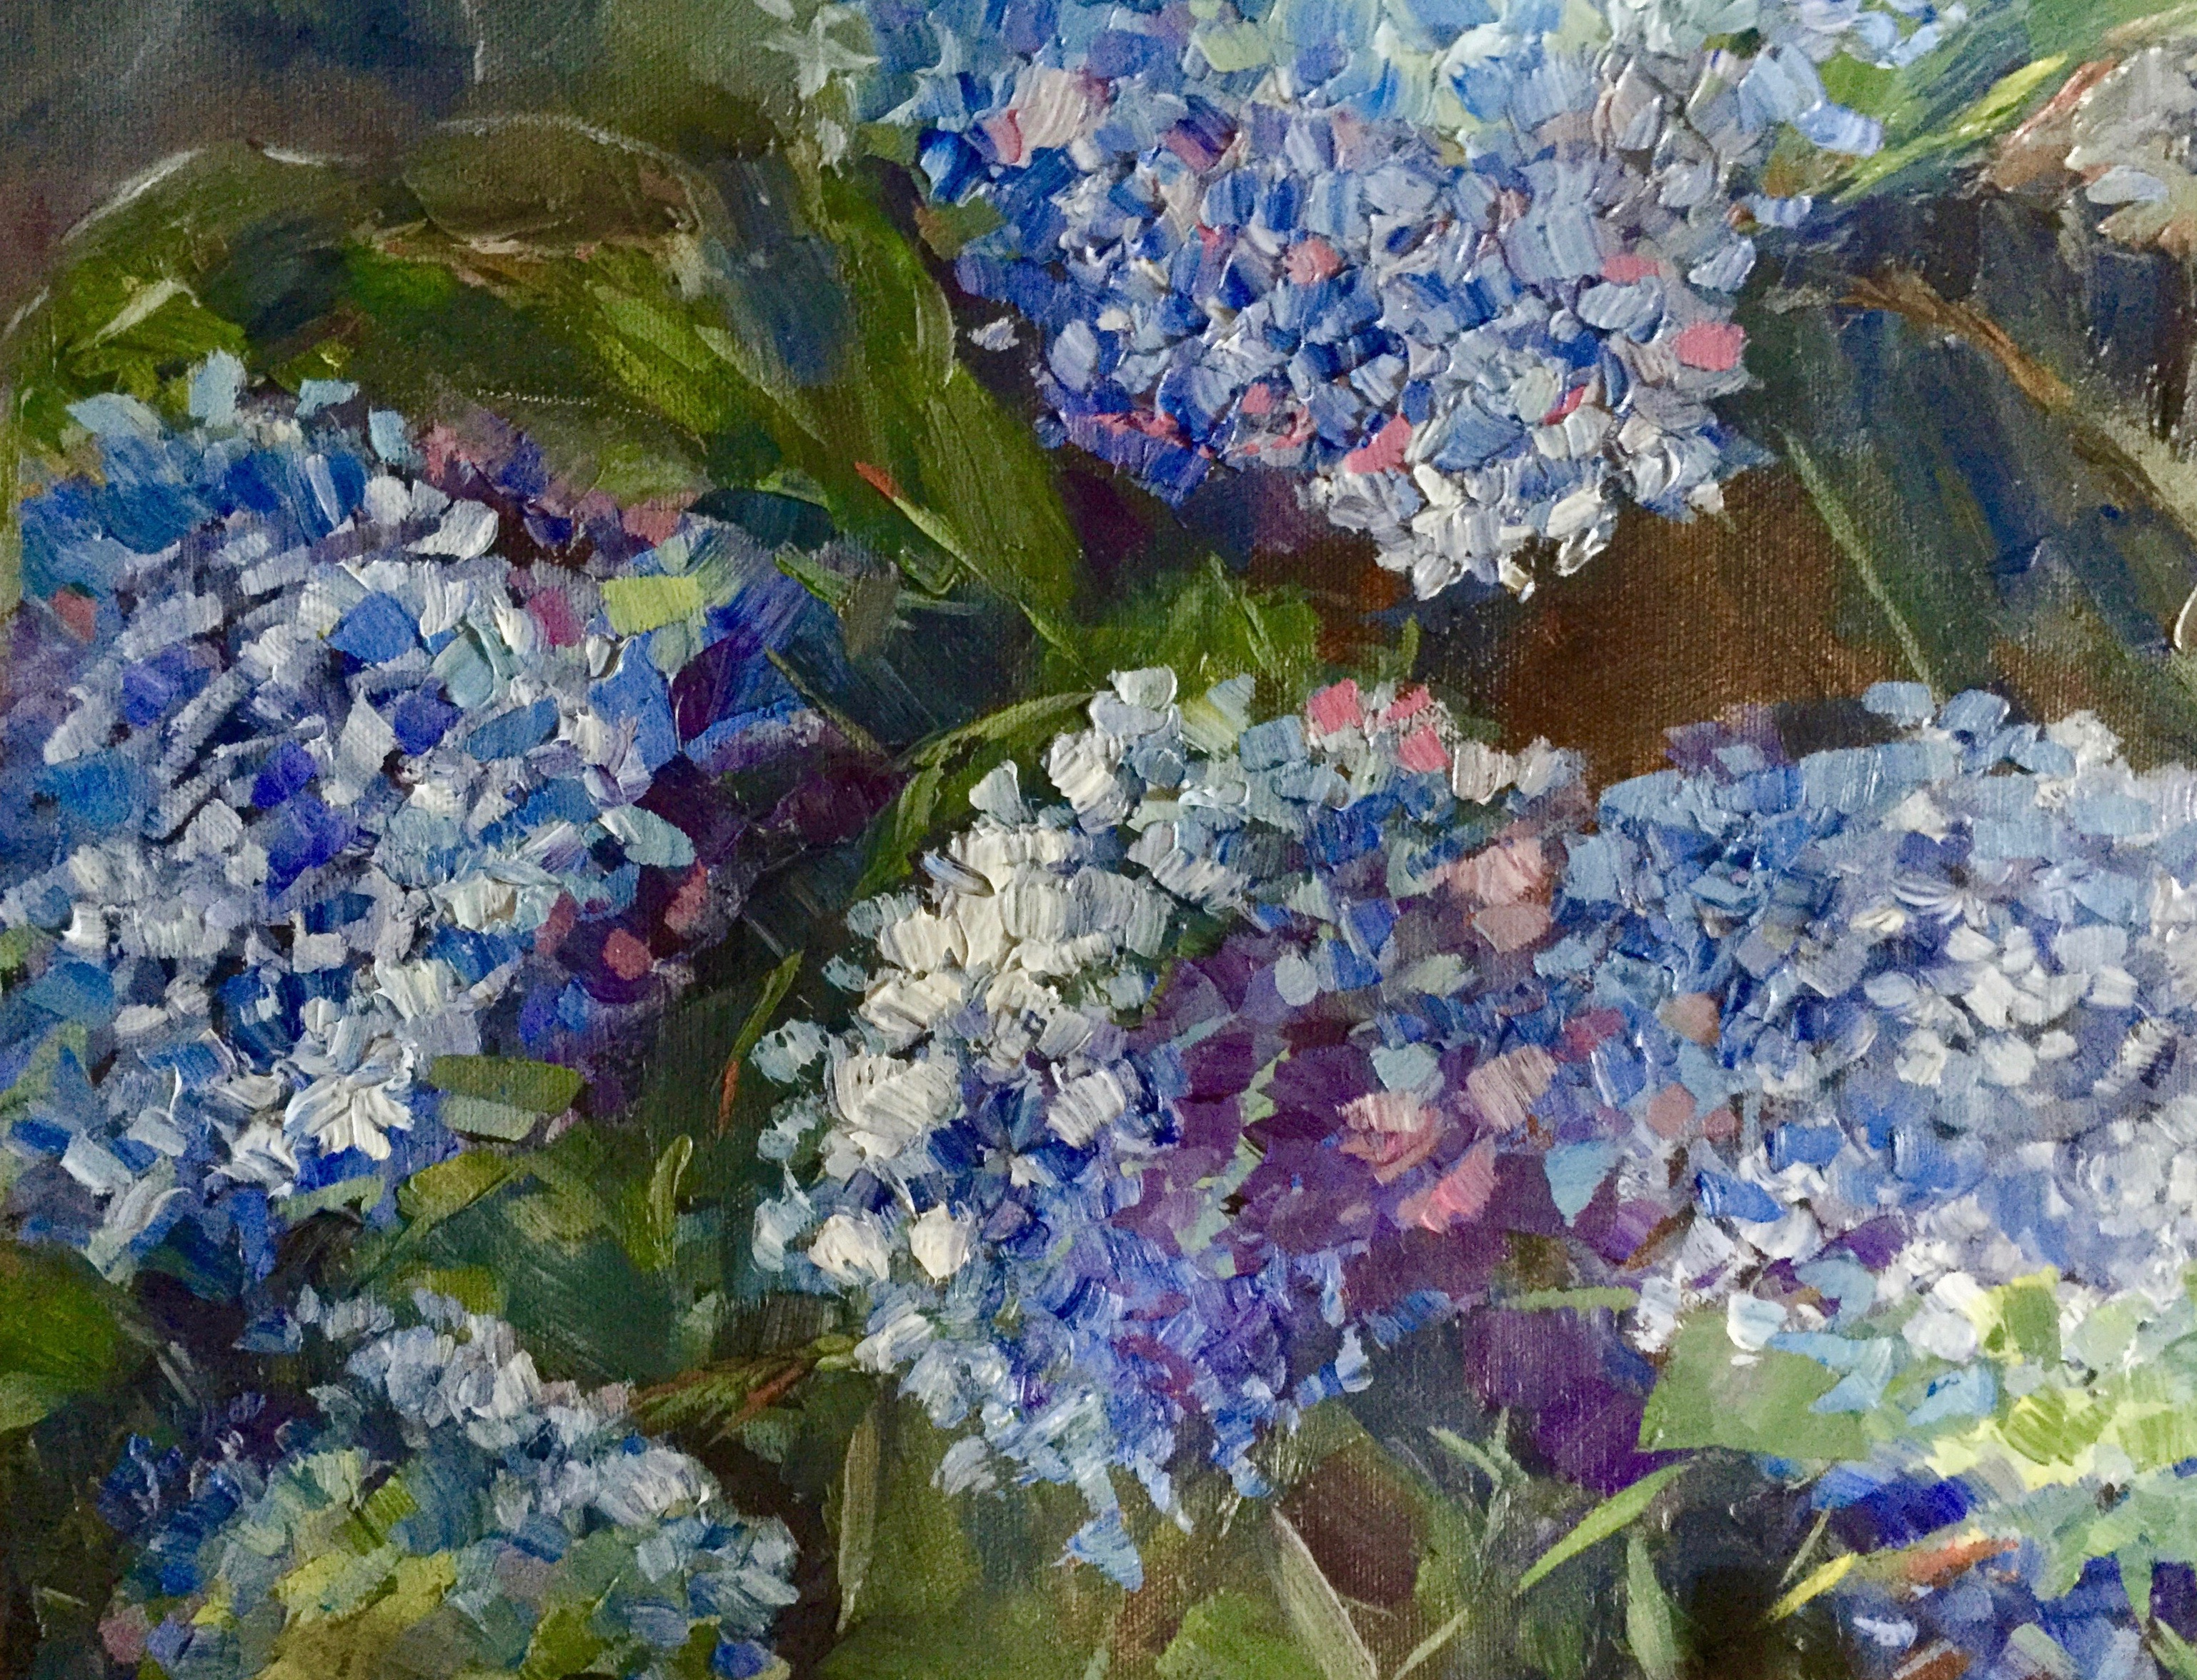 Hydrangeas on the East Side